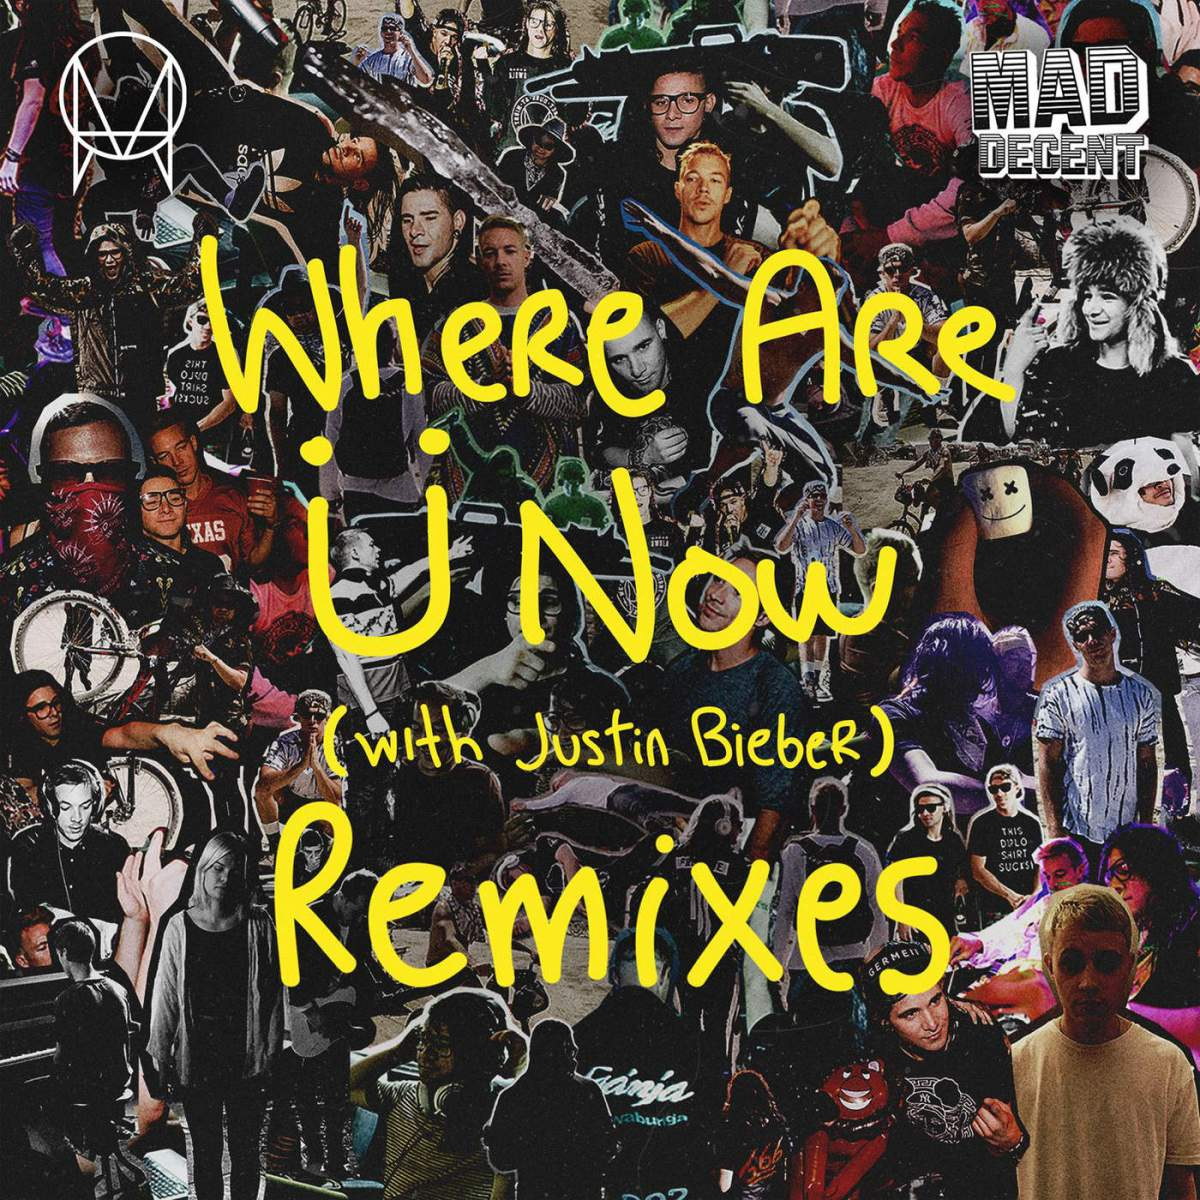 Hot Video Alert: Jack Ü feat. Justin Bieber - Where Are Ü Now